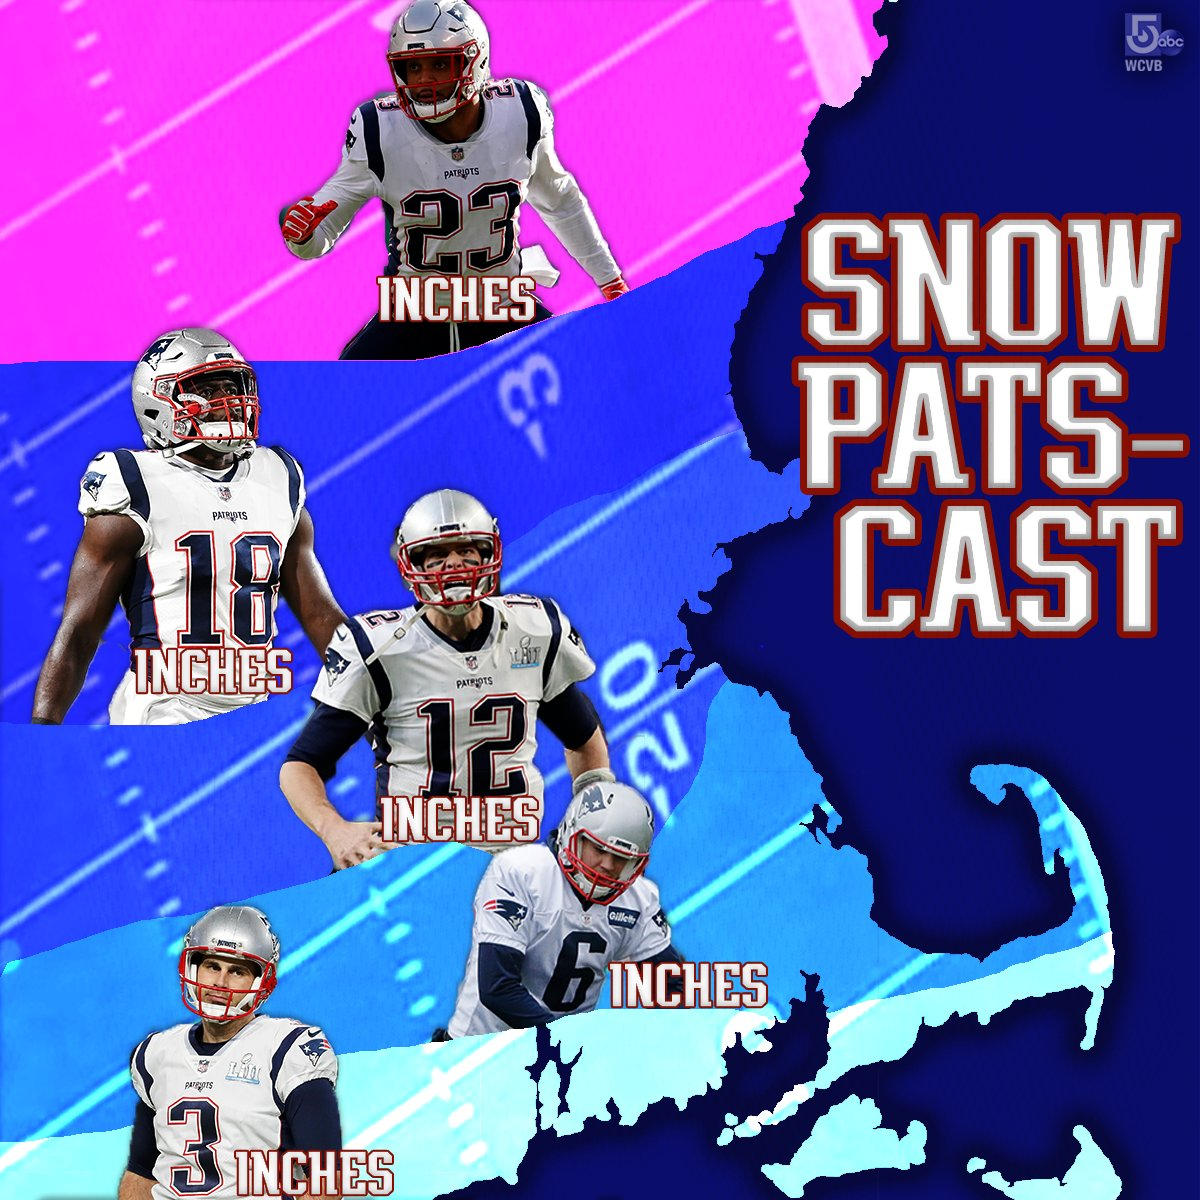 We're looking forward to two things this weekend... so we thought: Why not combine them? #snow #forecast #patriots #patriotsnationn#mawxathttps://t.co/VvUxU9fJFHion